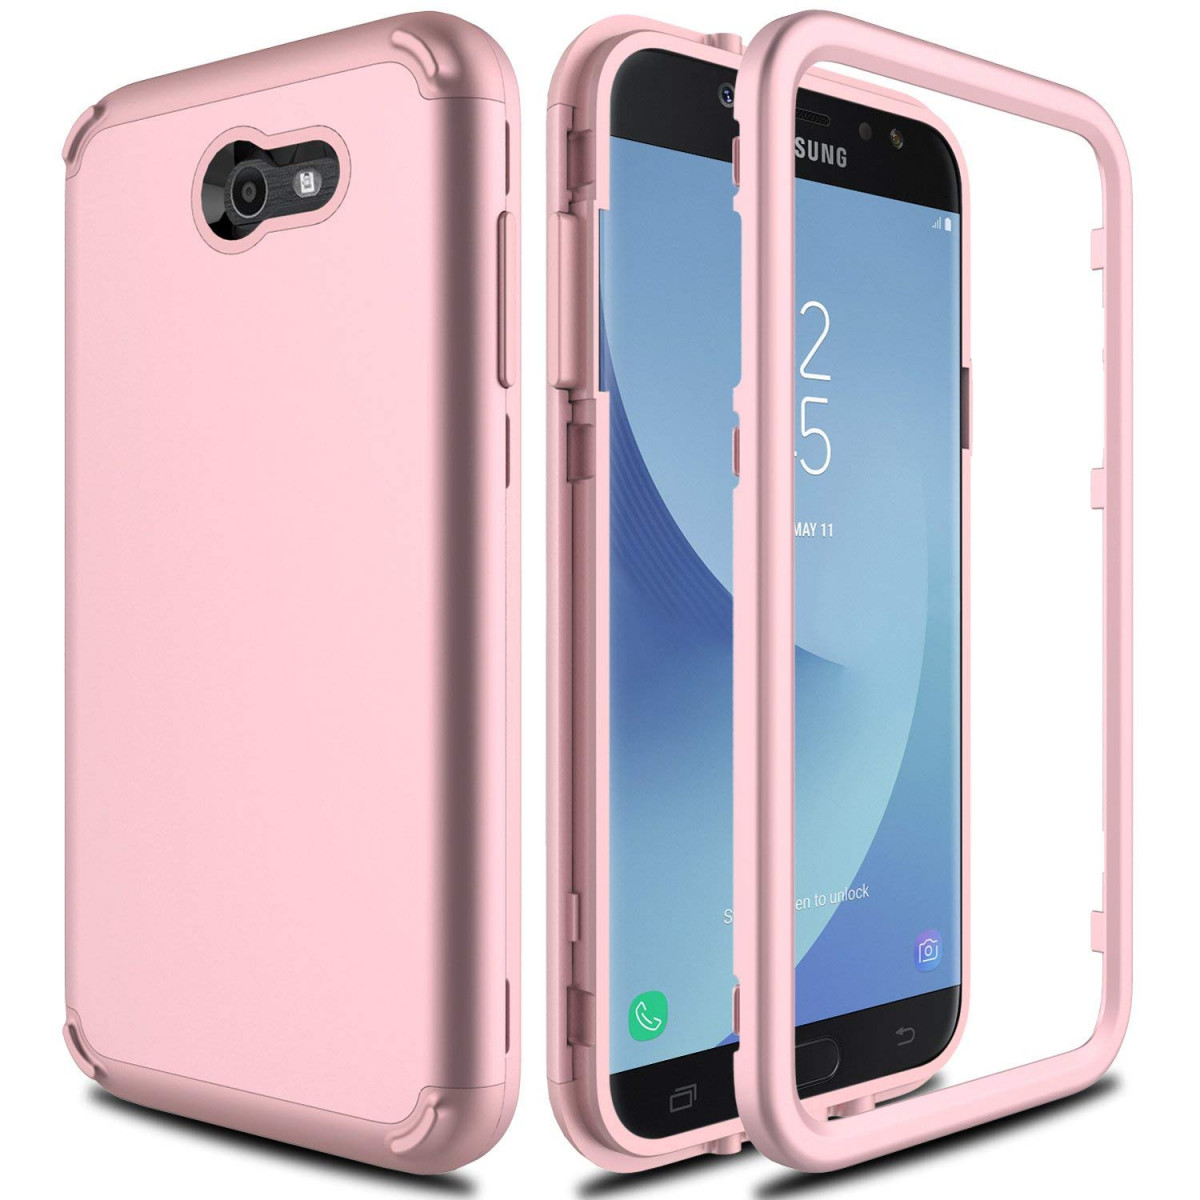 new styles 3ffc6 24308 Samsung Galaxy J7 Prime Case, Galaxy J7 V Case, J7 Perx/J7 Sky Pro/Galaxy  Halo AMENQ 3 in 1 Heavy Duty Absorb Impact Silicone Rubber Smooth PC ...